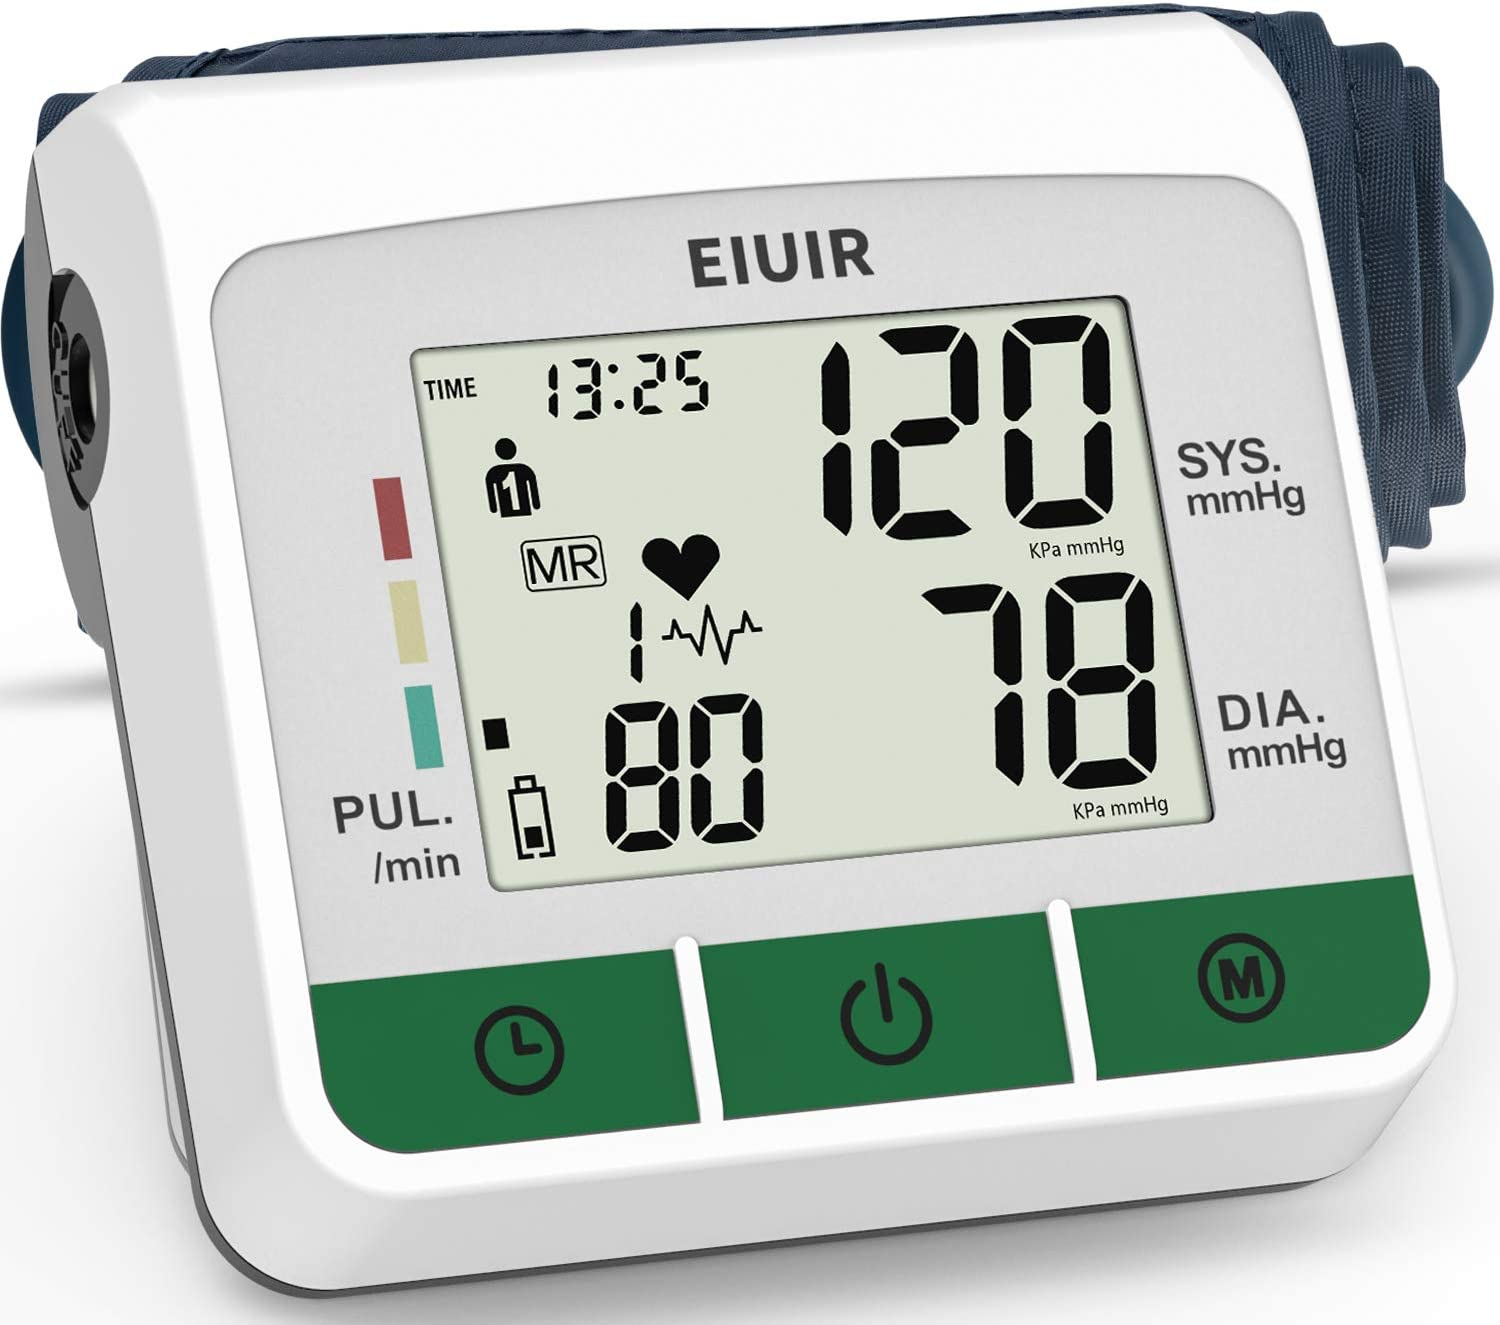 2021 Newest Upper Arm Blood Pressure Monitor Blood Pressure Machine Heart Pulse Rate Monitoring Meter with M Size Cuff 22-32 cm 2×120 Sets Memory LCD Display Screen for Home Office Use